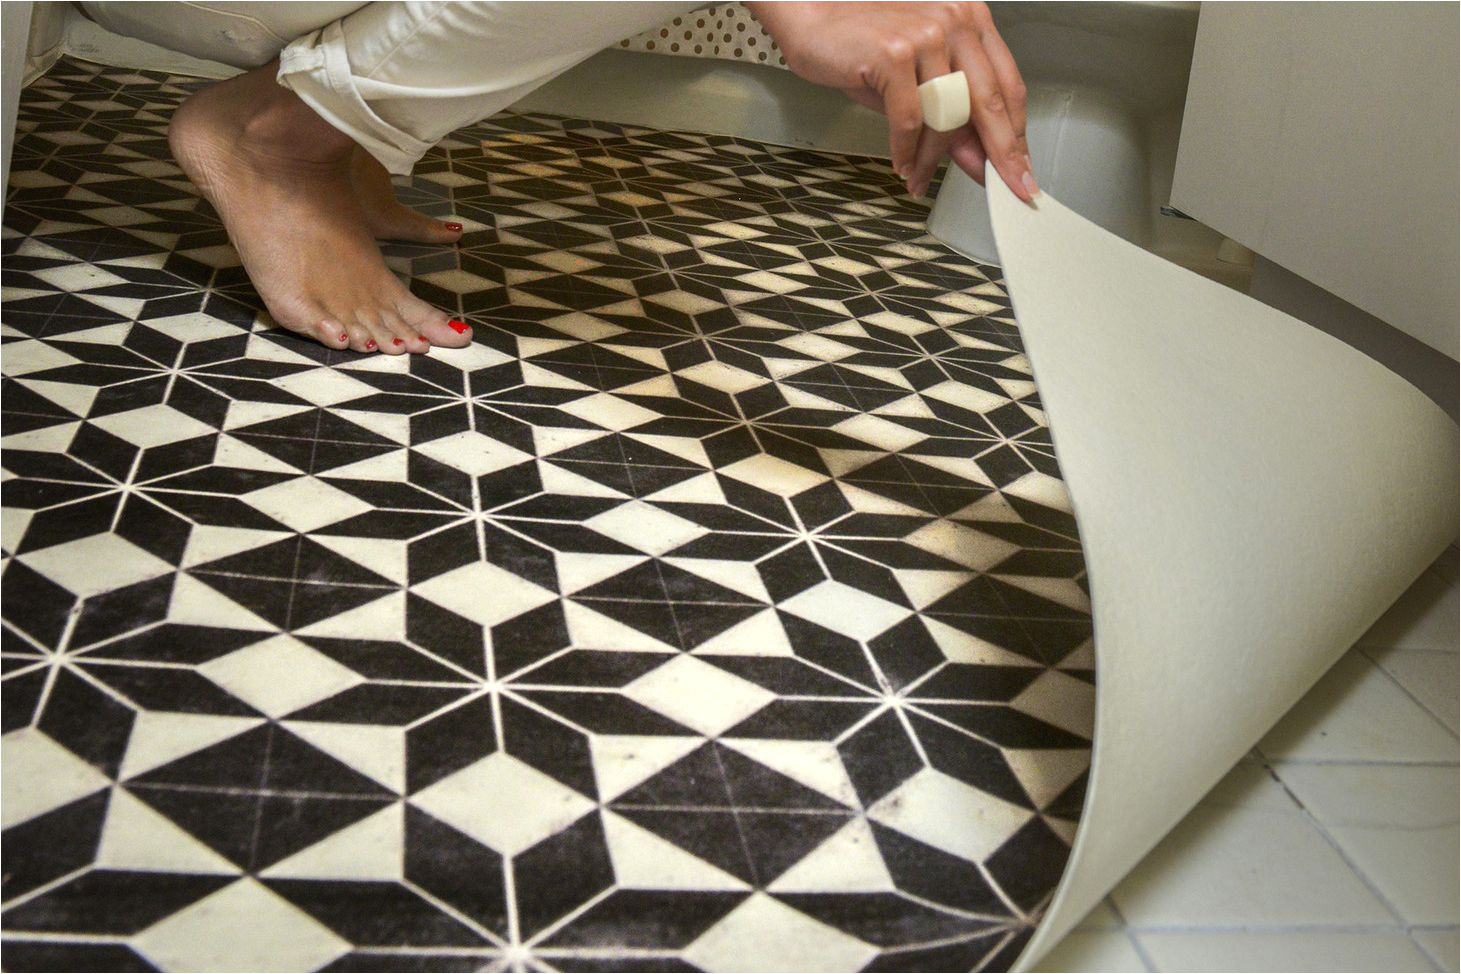 Dustless Tile Removal Rental 7 Fast and Fabulous Fixes for Frightful Floors